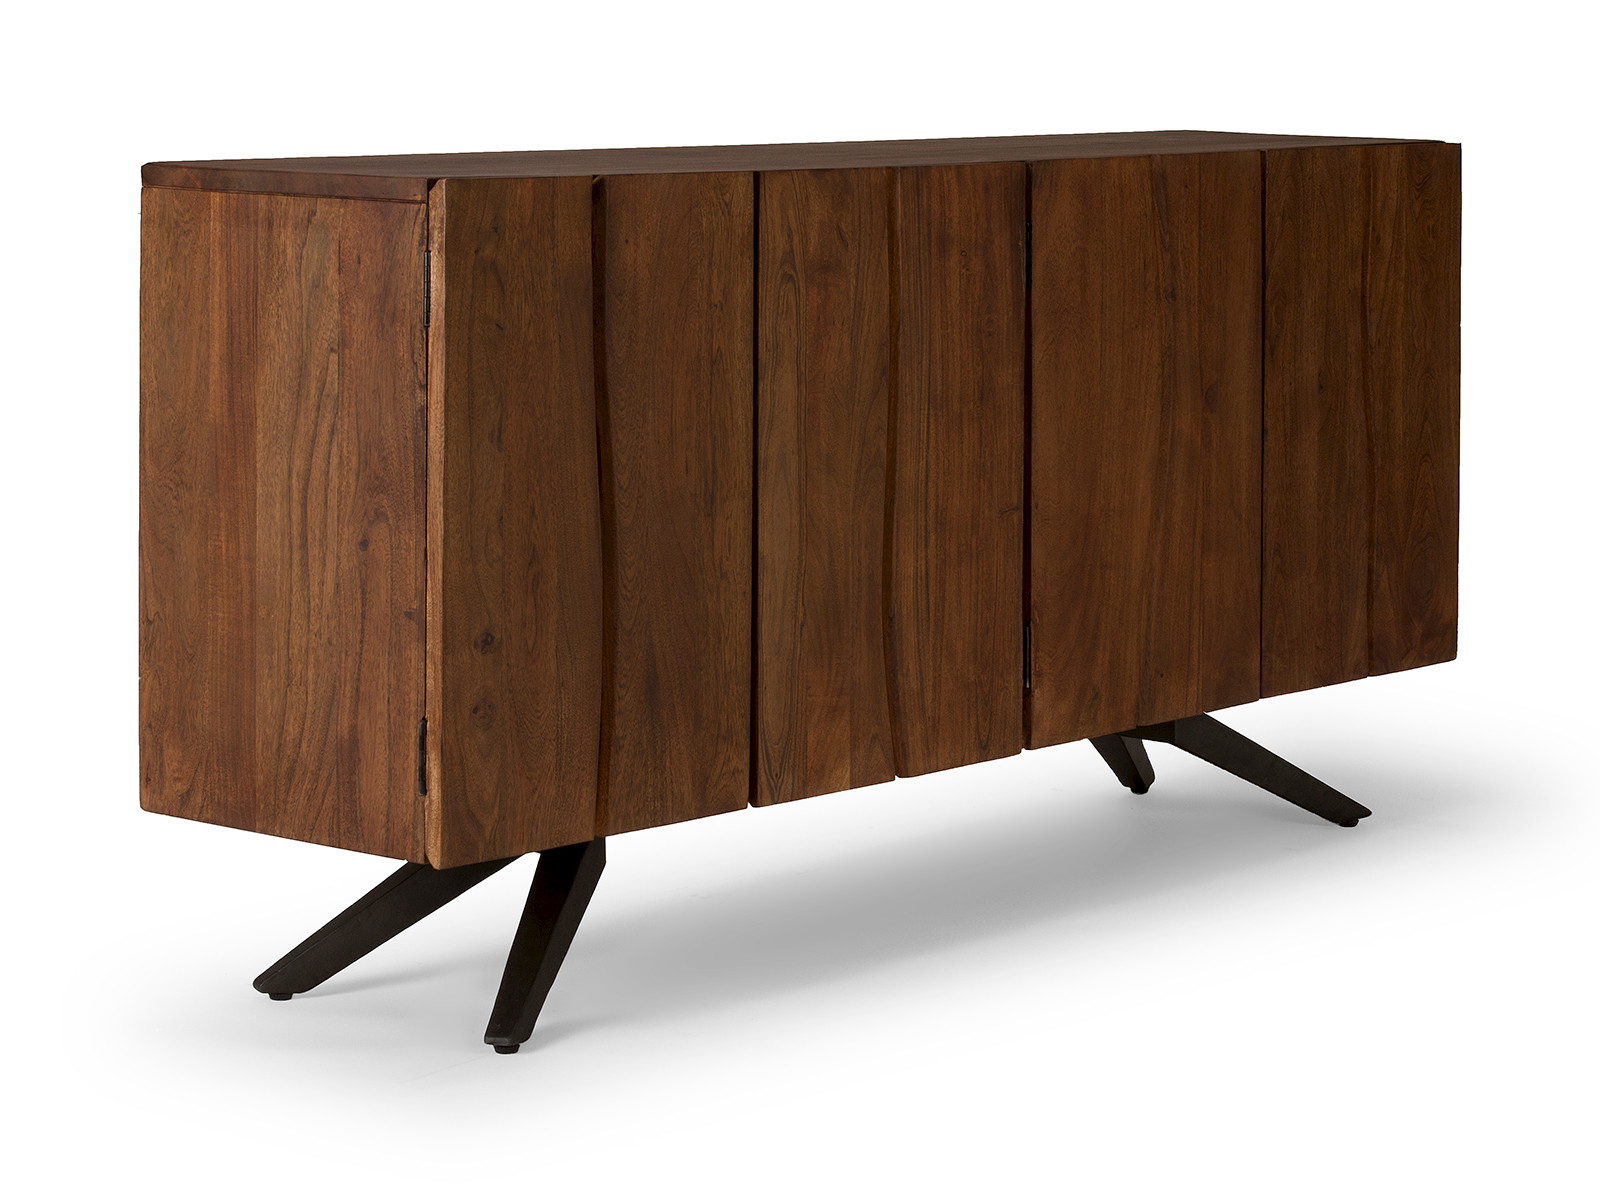 industrie m bel sideboard massivholz aus akazie. Black Bedroom Furniture Sets. Home Design Ideas